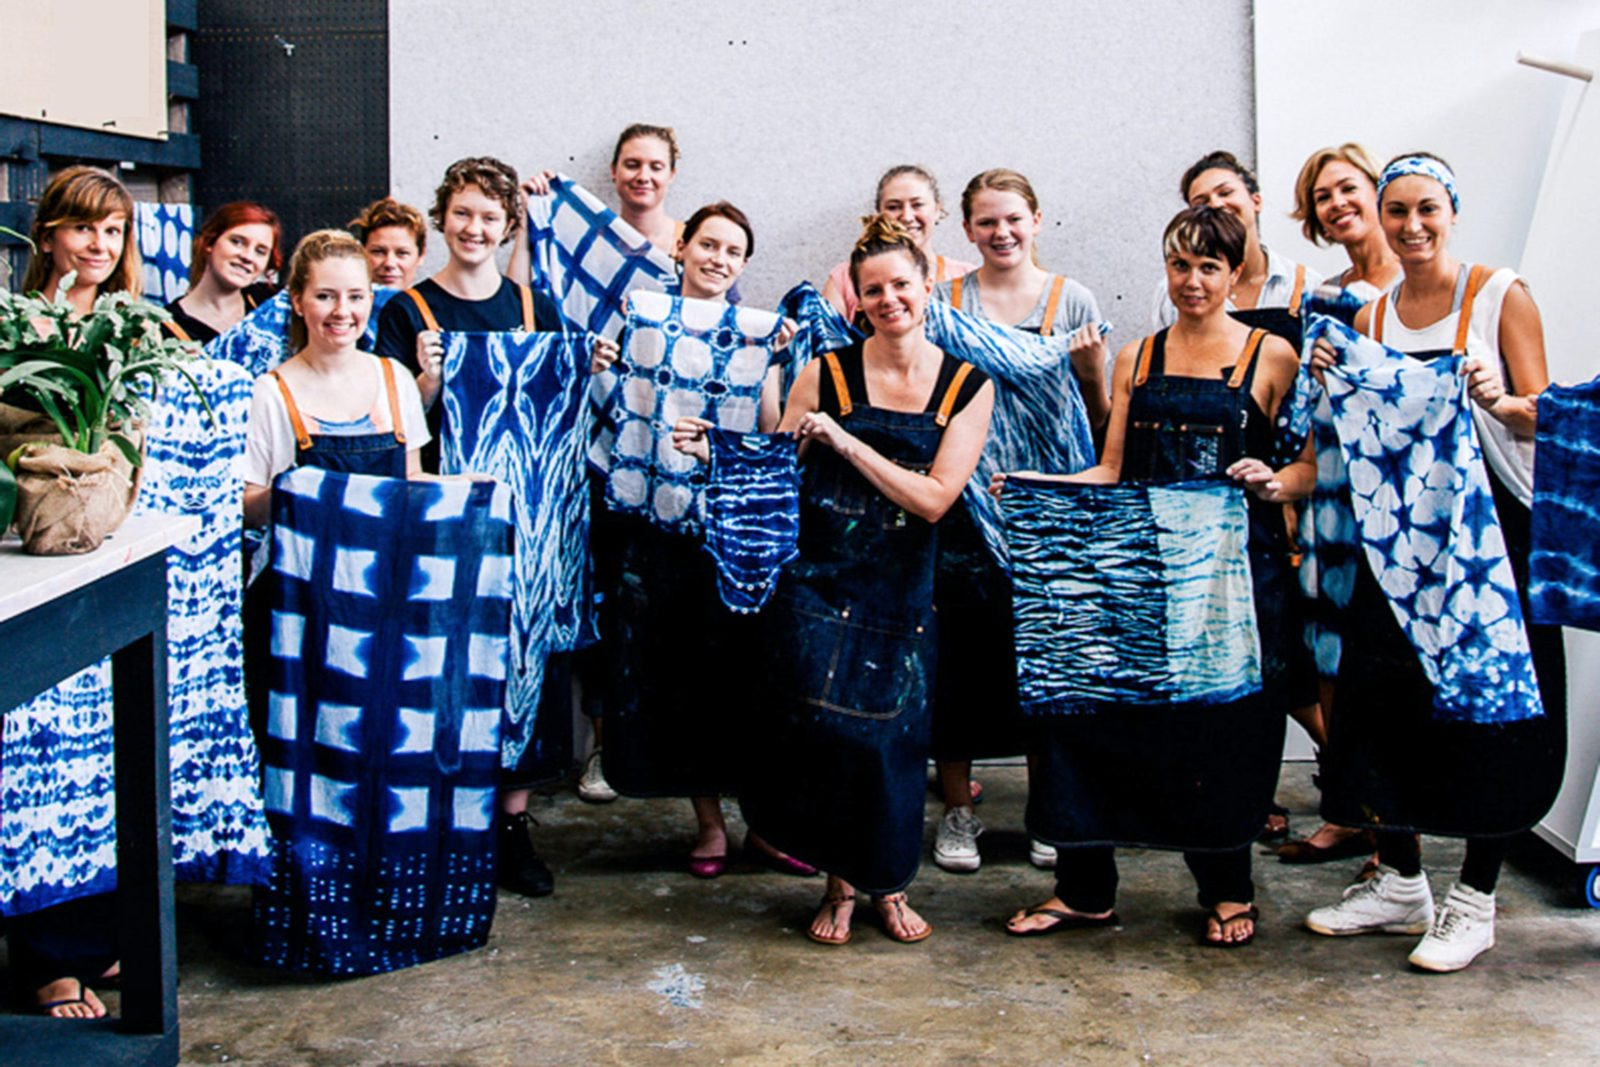 shibori classes with indigo, class members holding their work